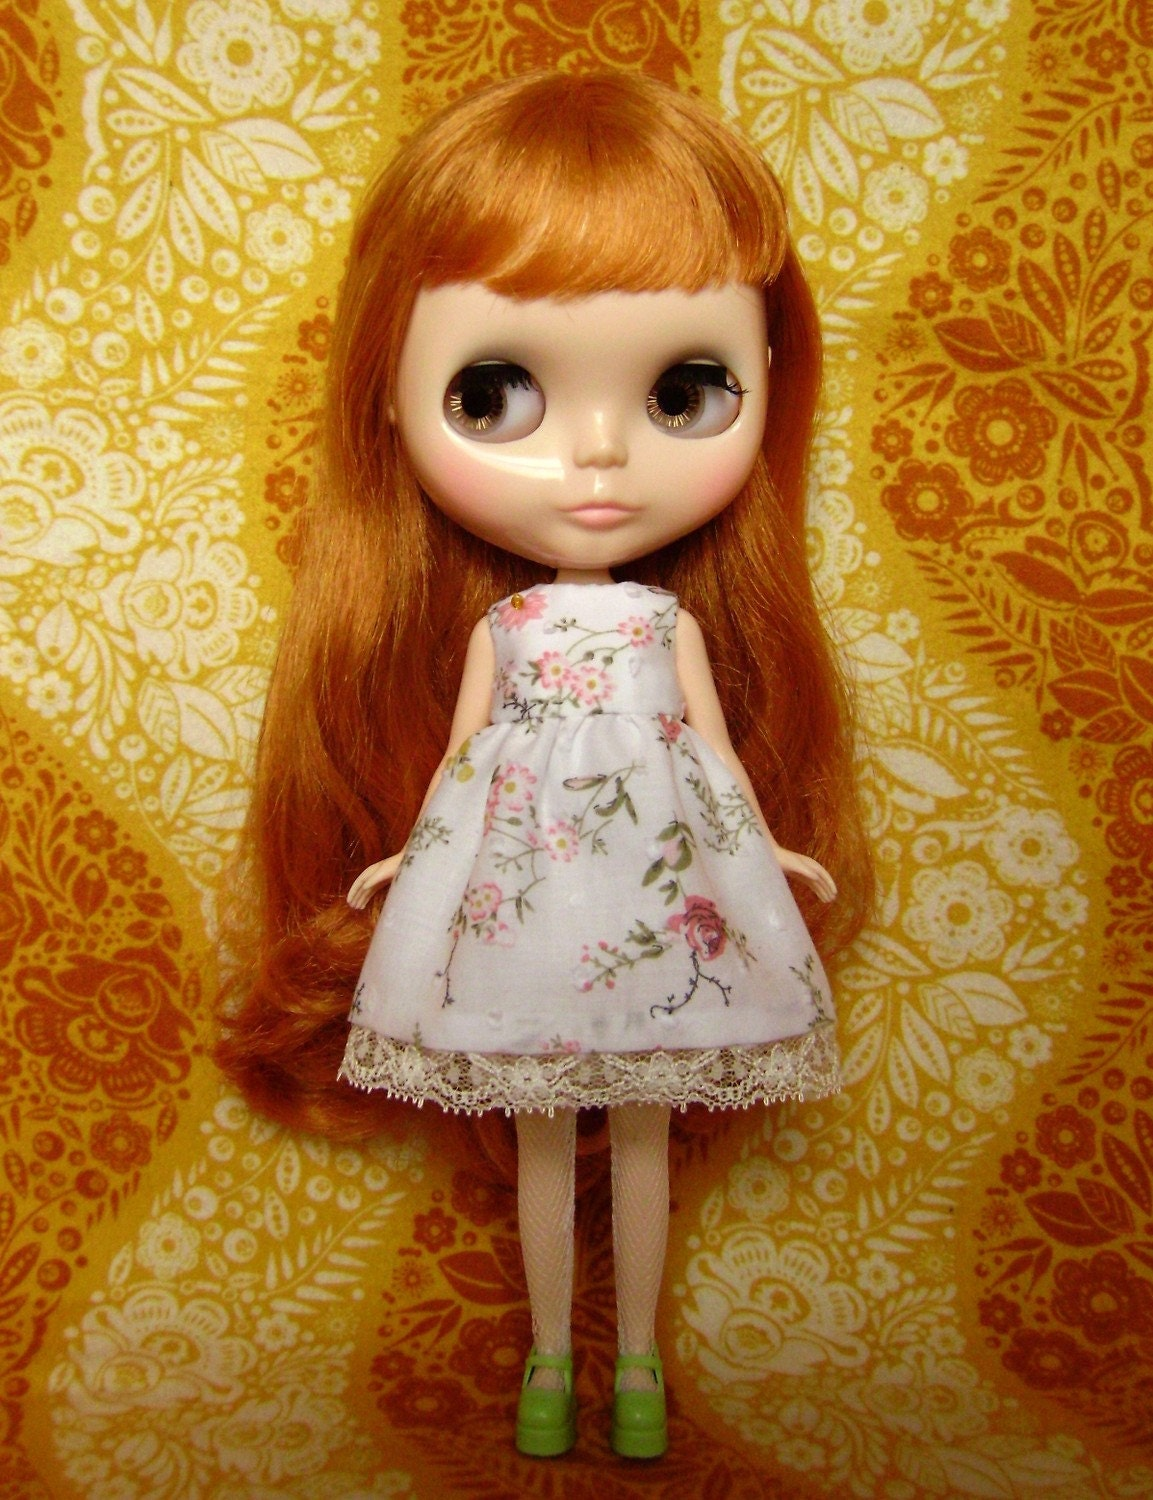 Daisychain Babydoll Dress and Bloomers set for Blythe